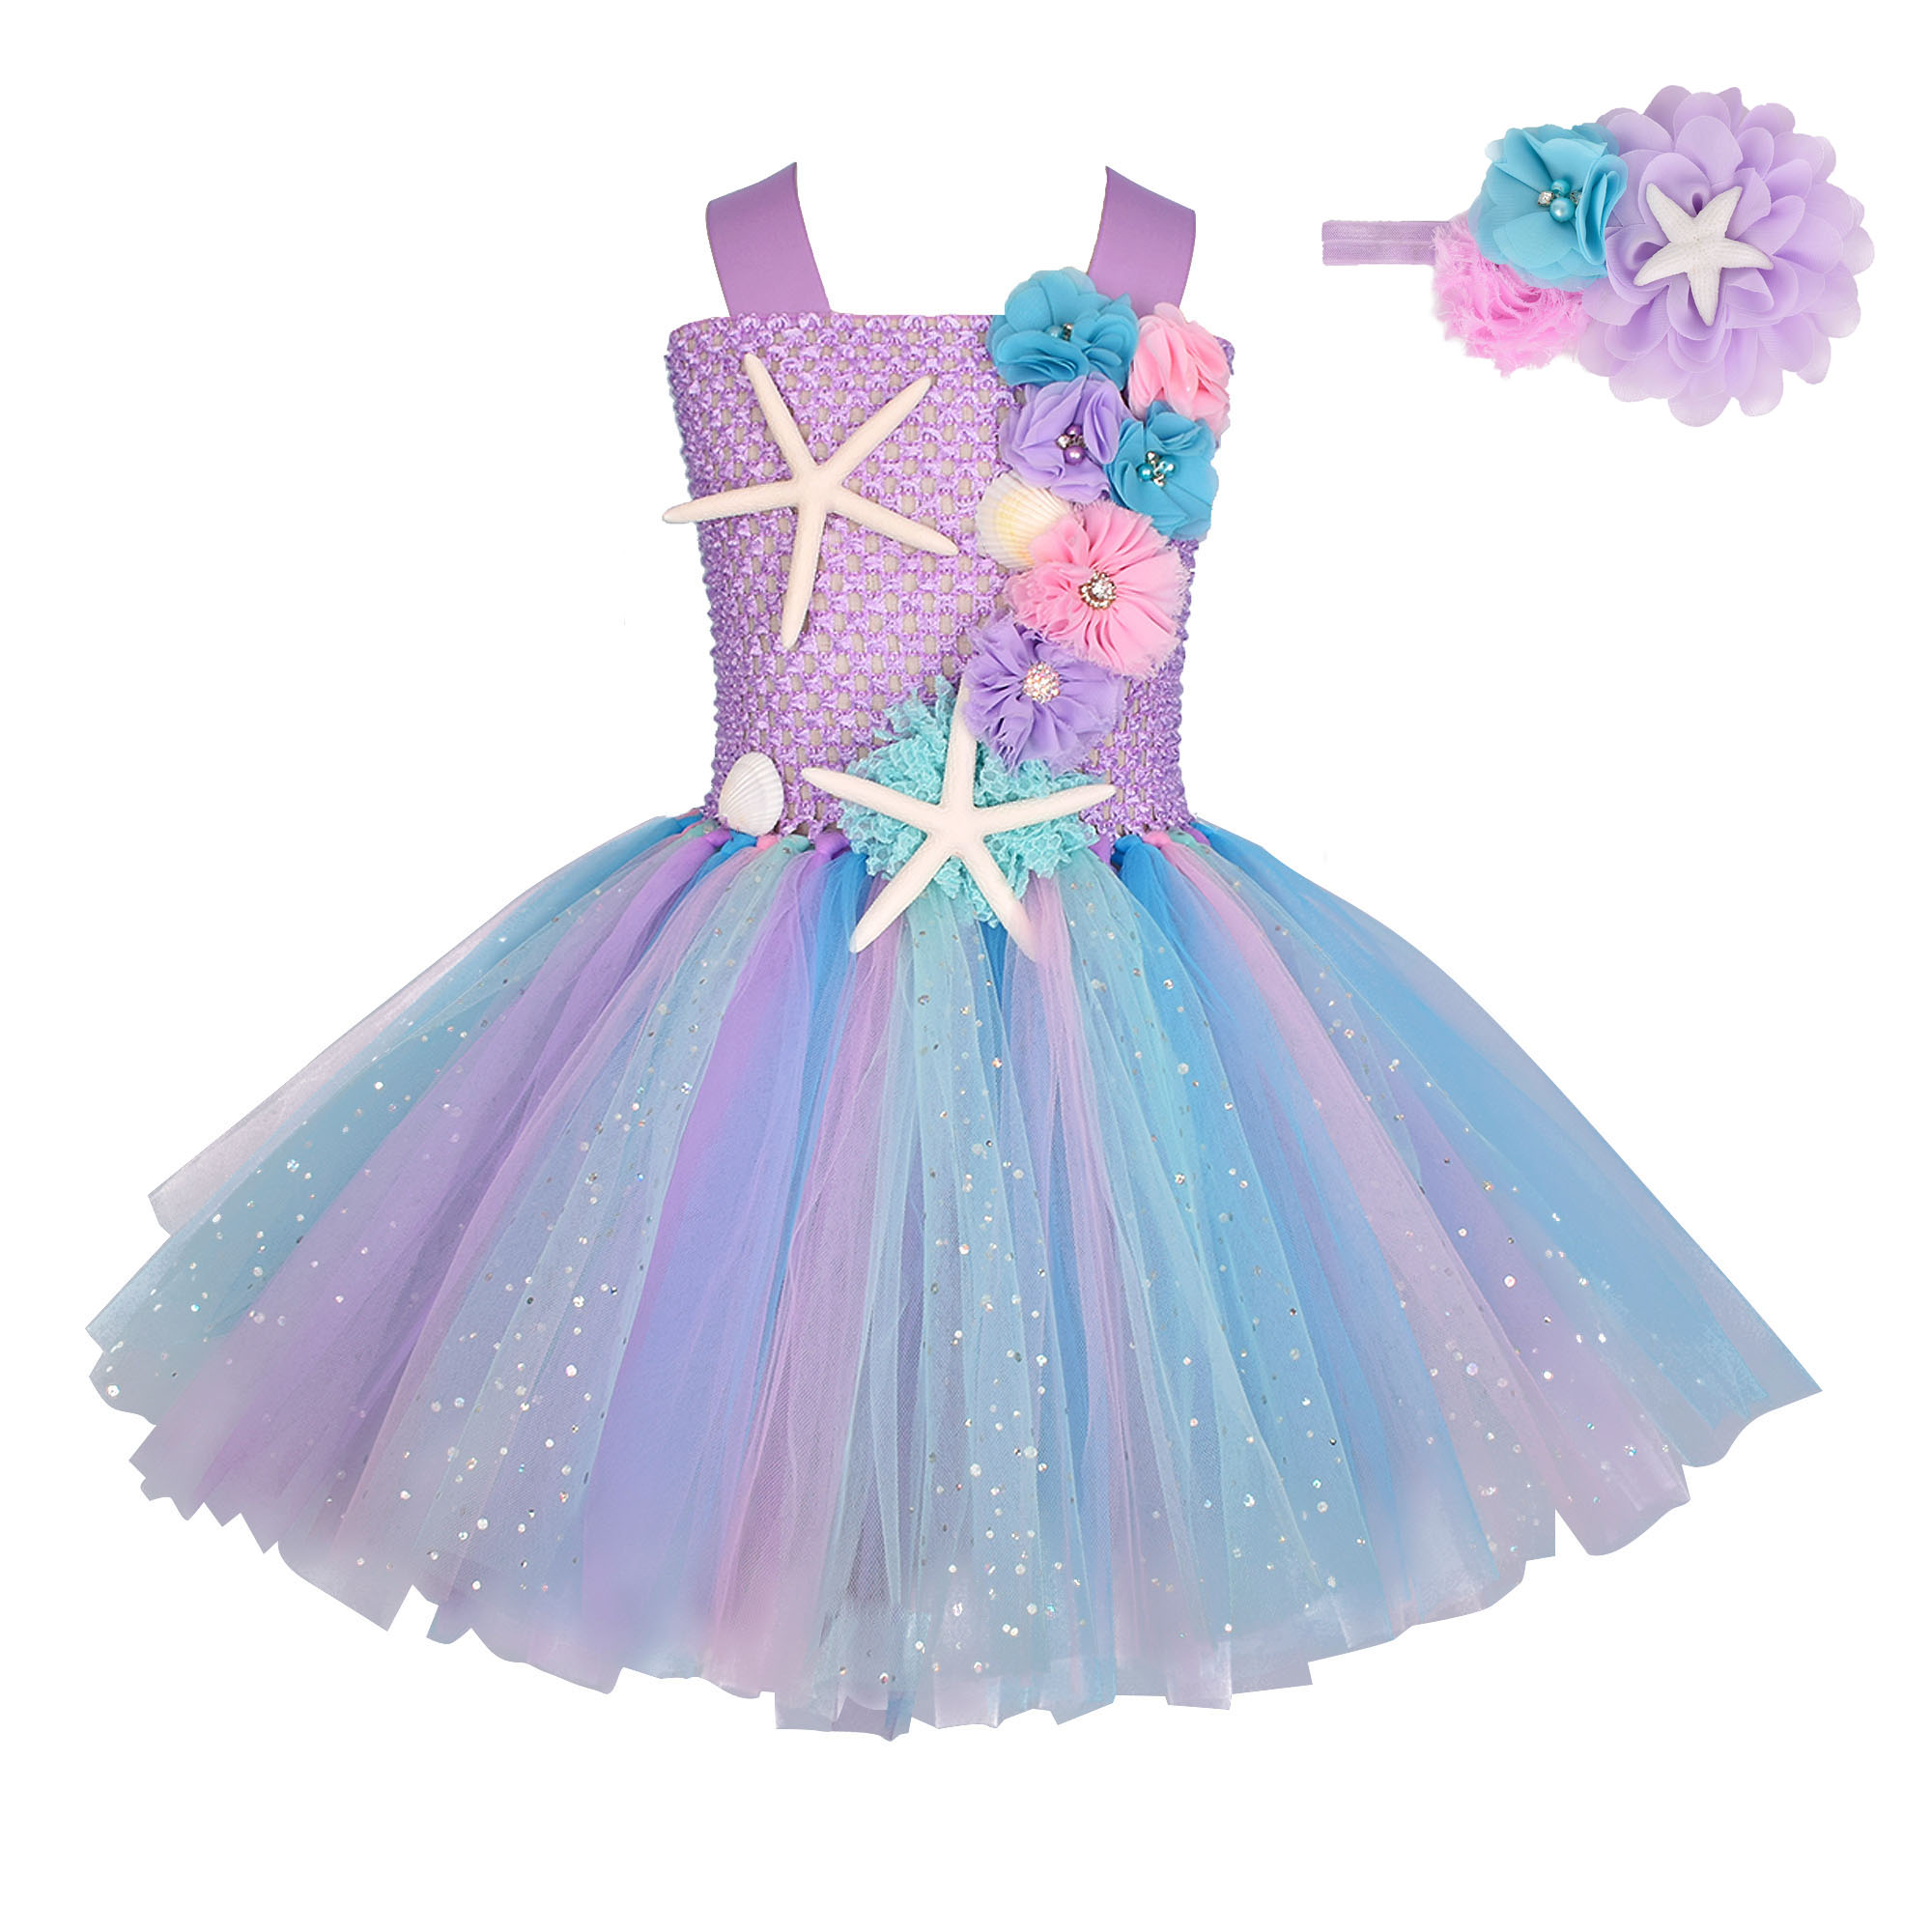 Girls Pastel Mermaid Princess Dress With Headband Sets Baby Girl Birthday Party Costume Floral Tulle Dress Cosplay Clothes